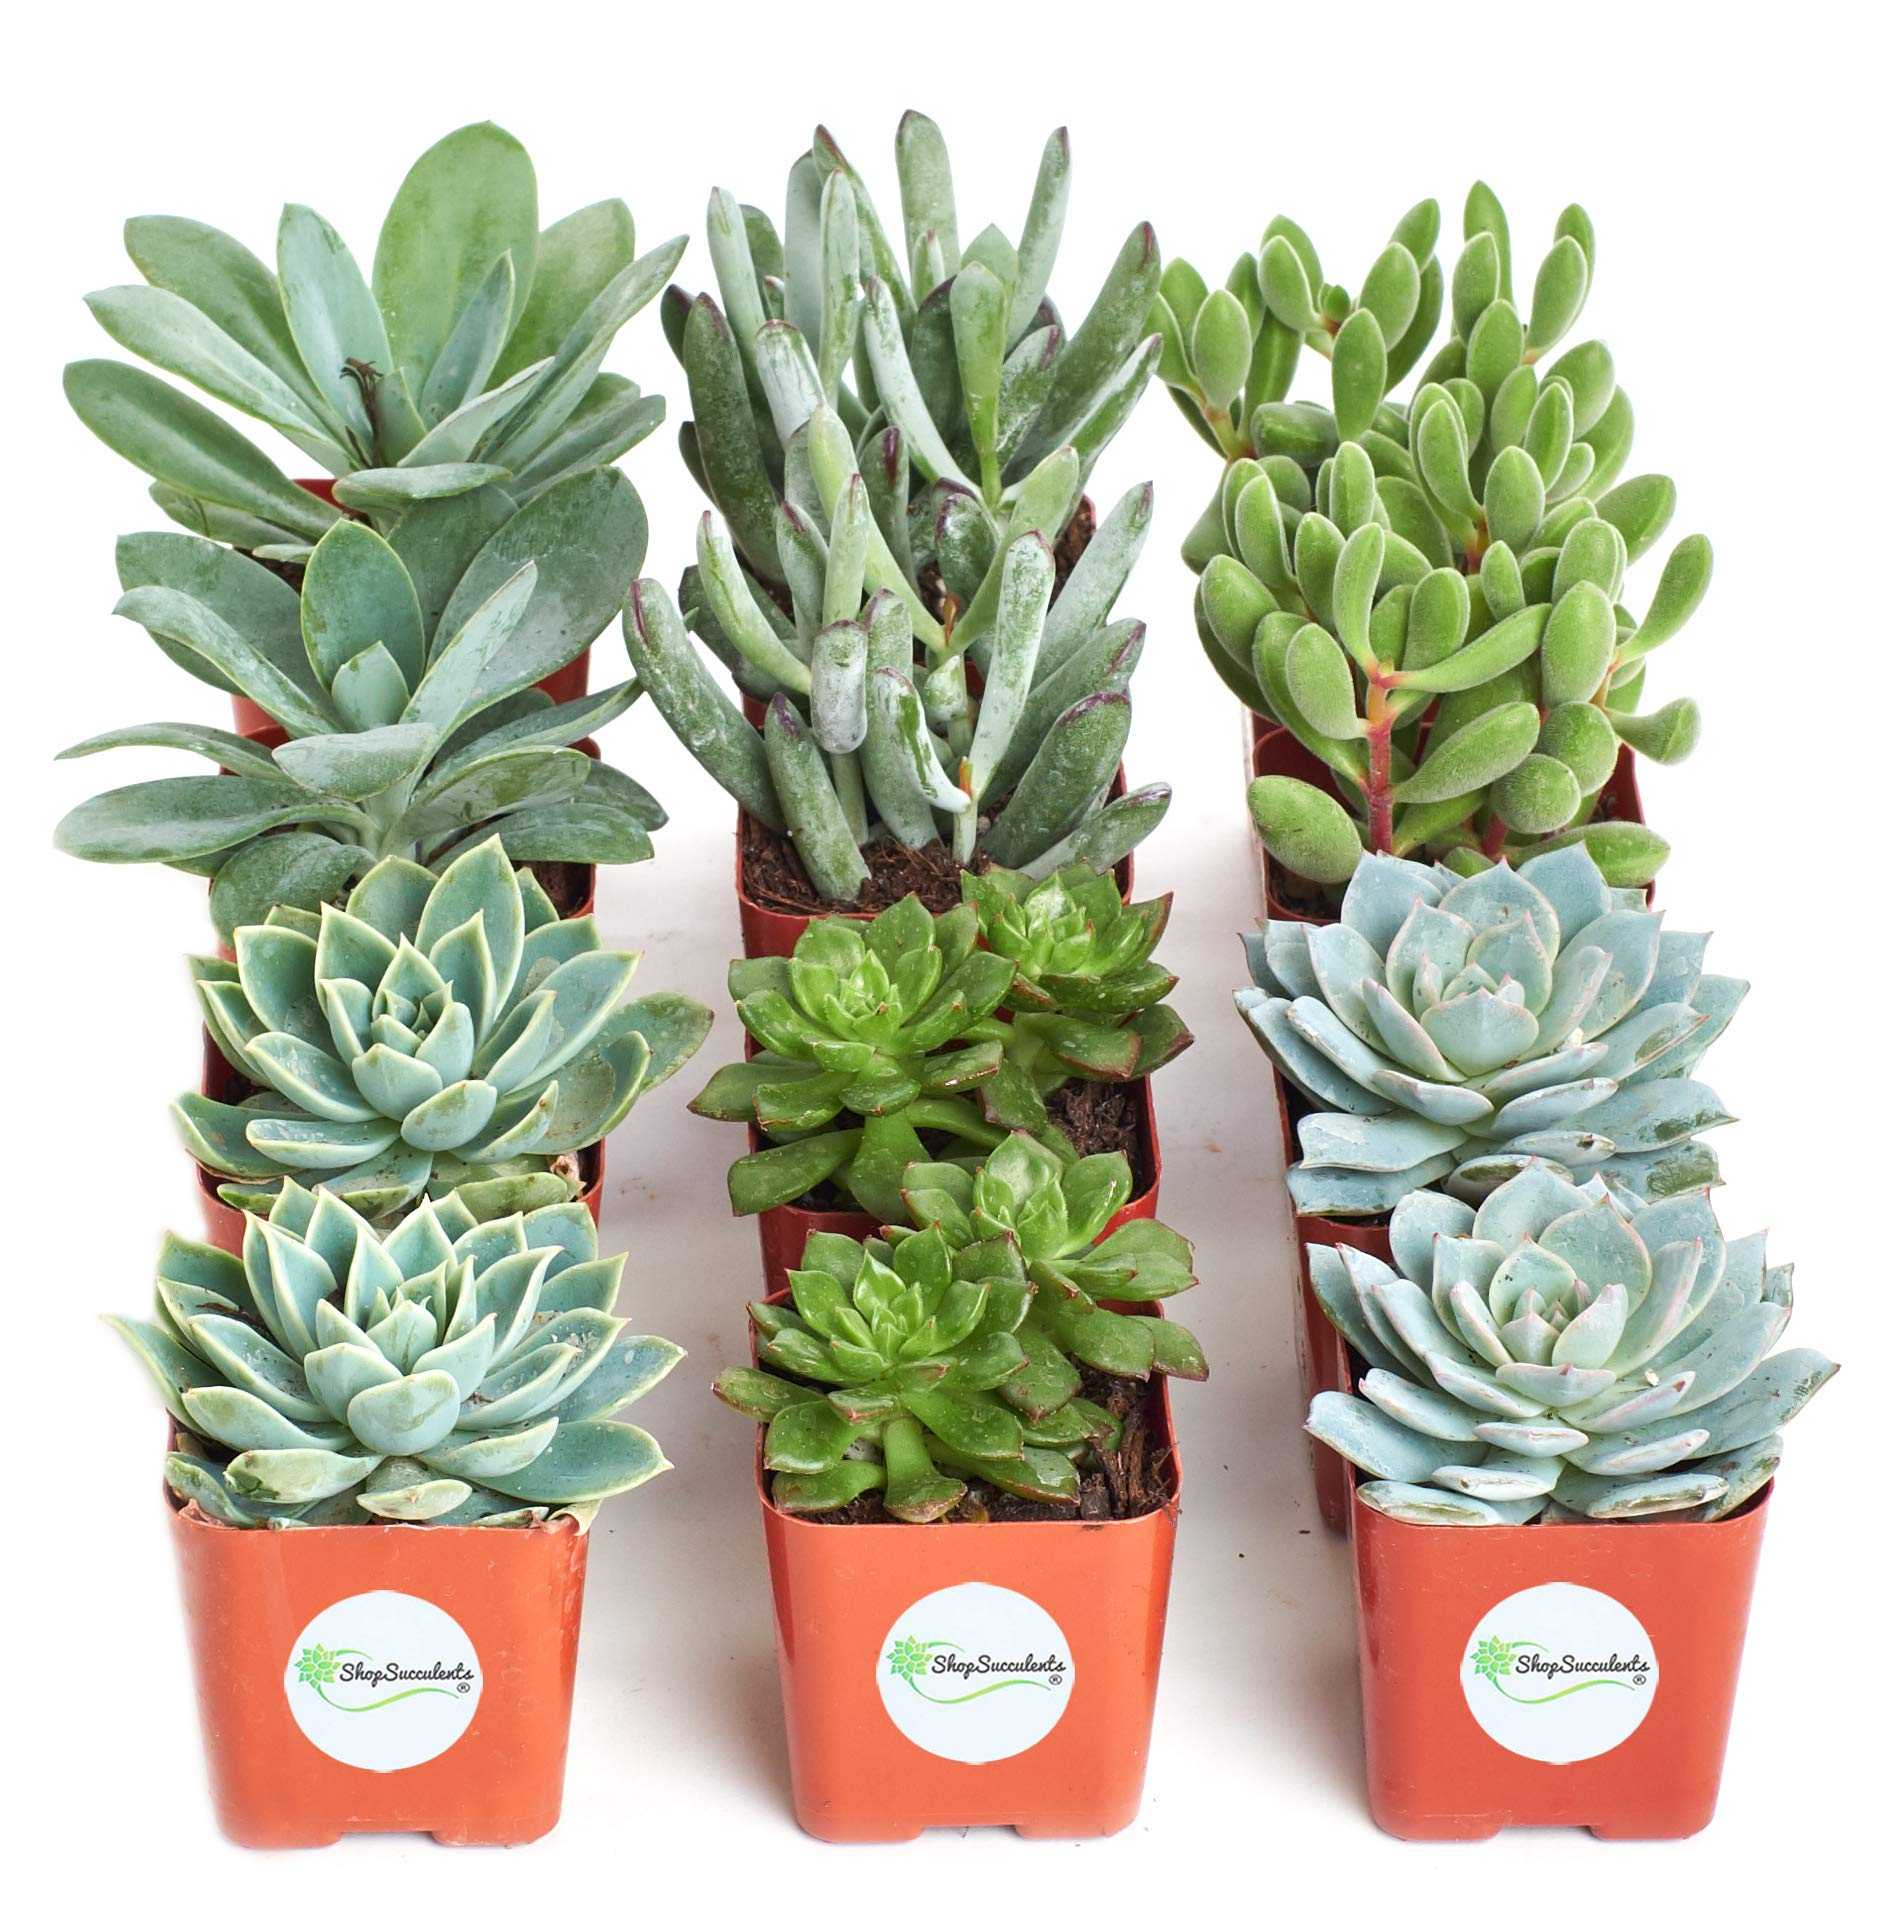 Shop Succulents | Blue/Green Live Plants, Hand Selected Variety Pack of Succulents | | Collection of 12 in 2'' pots, Pack of 12